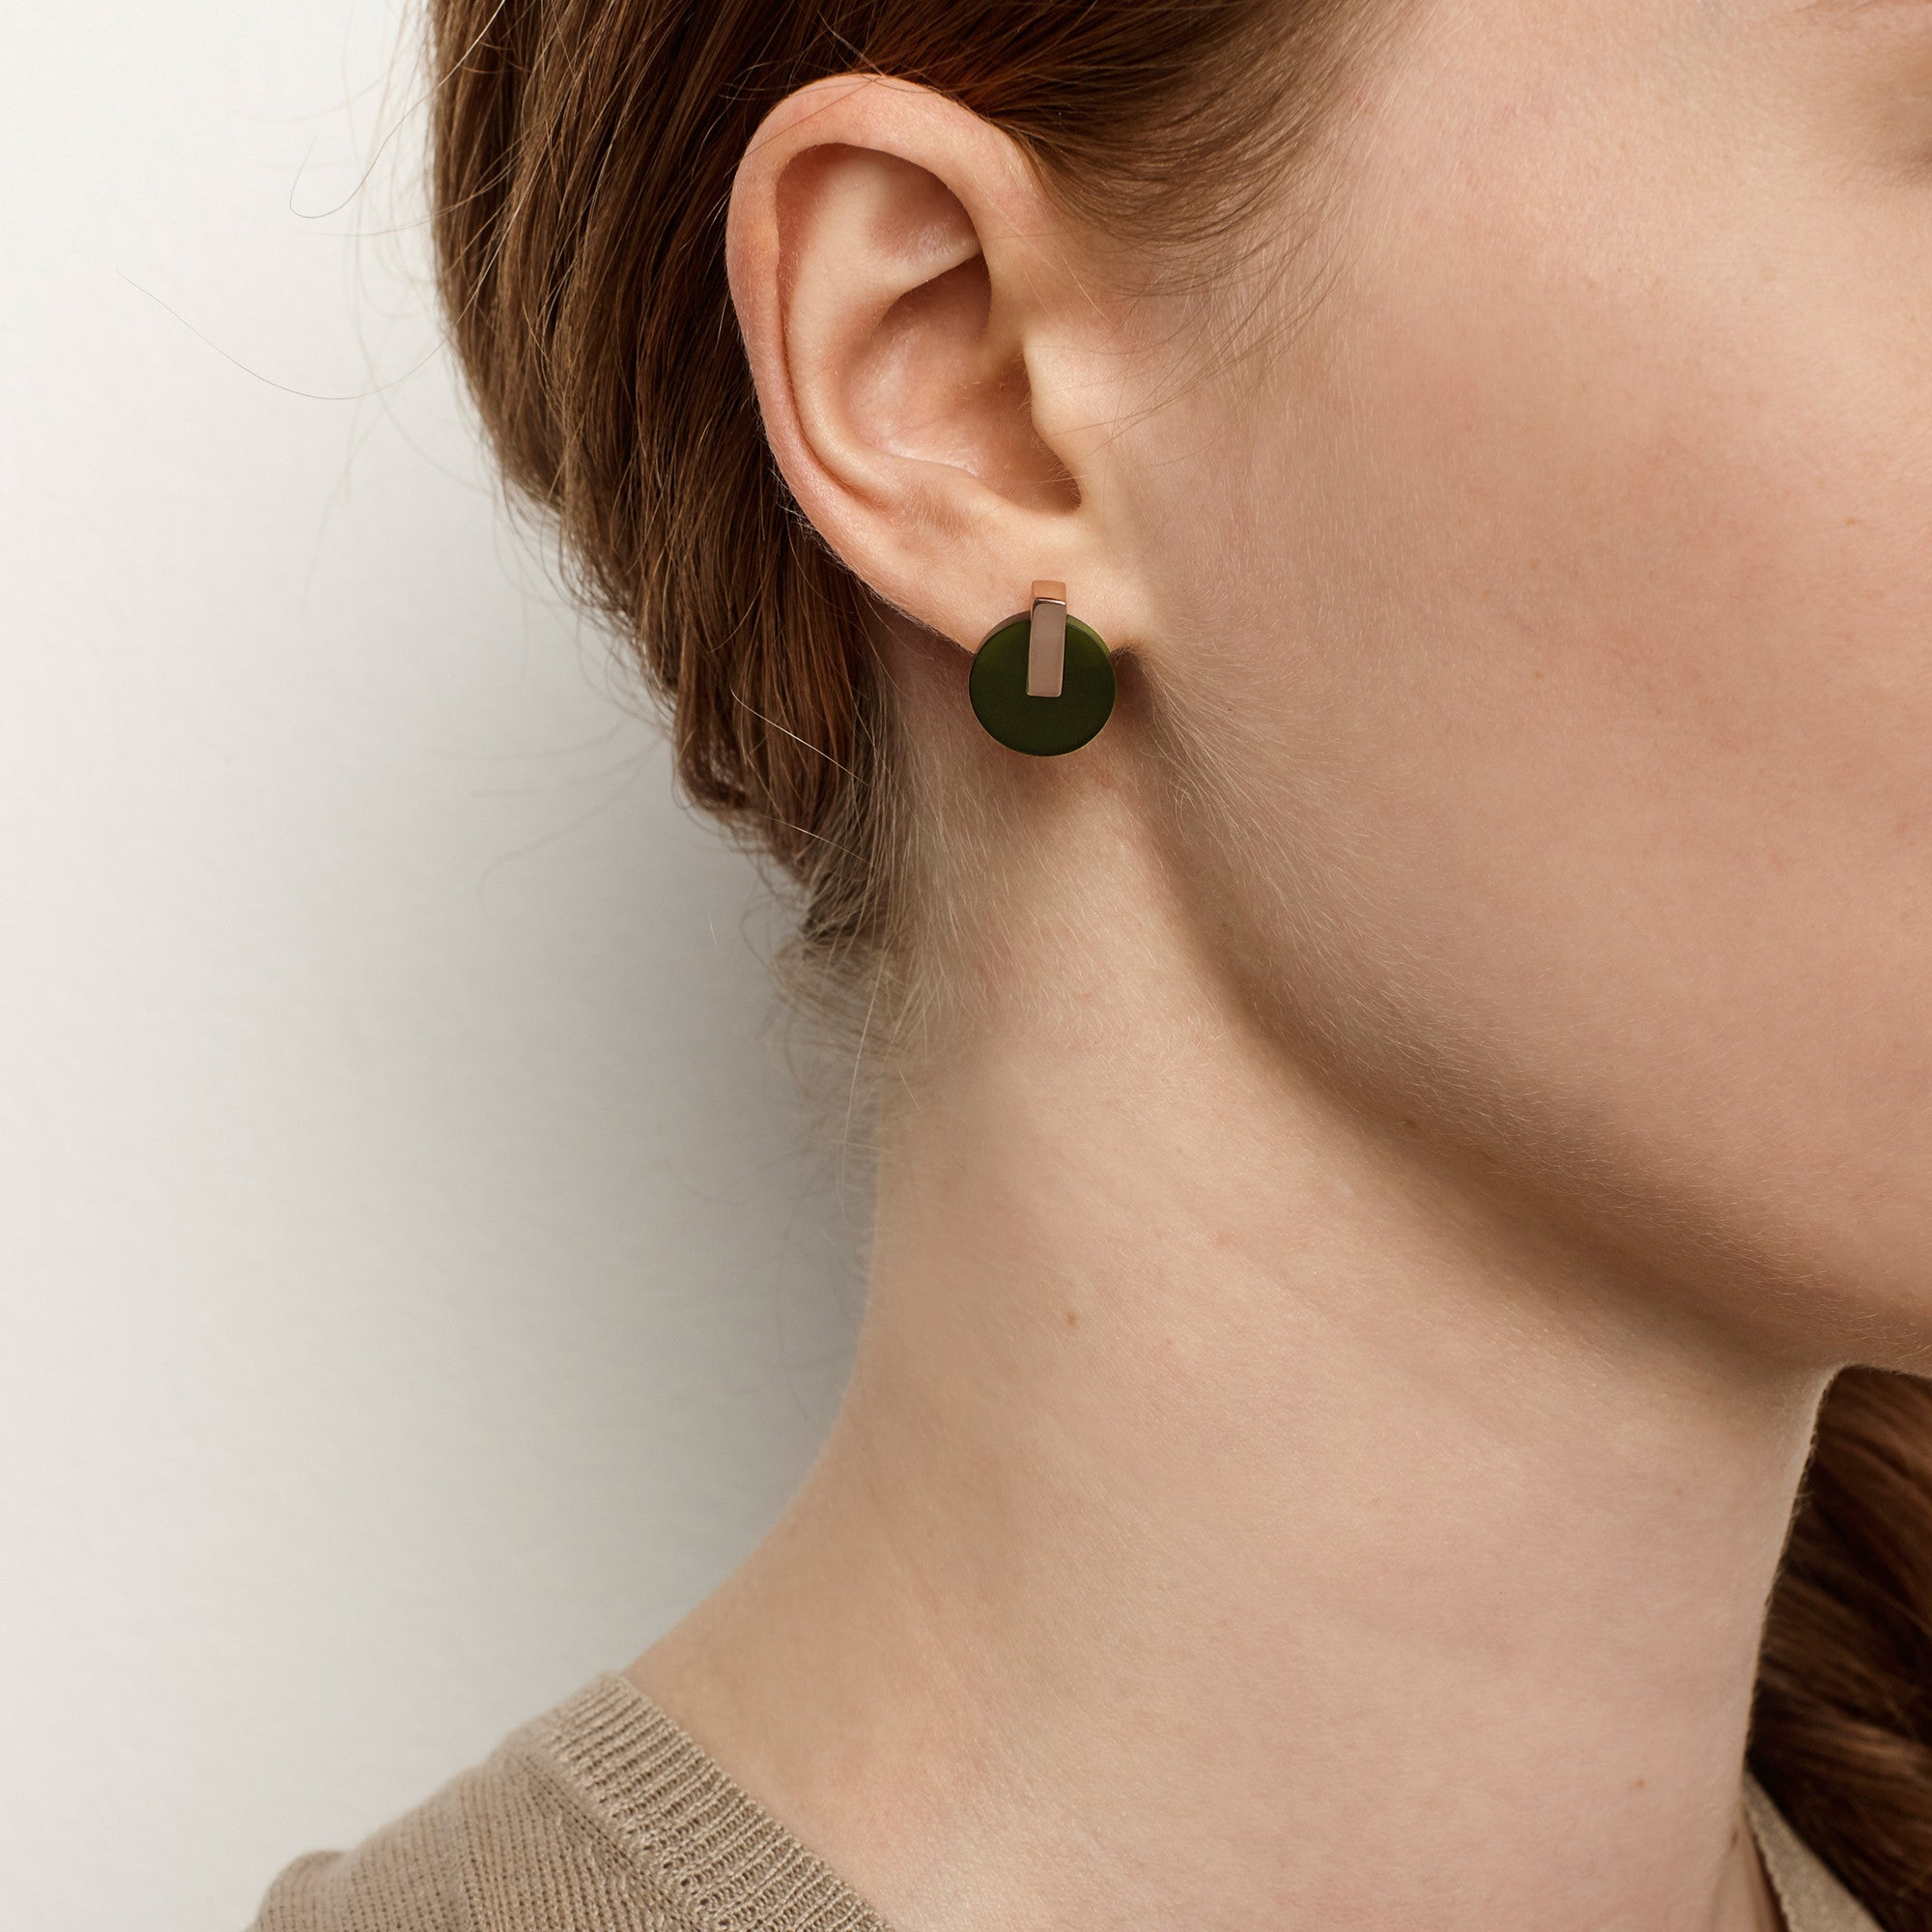 Resonance Stud Earrings - Olive